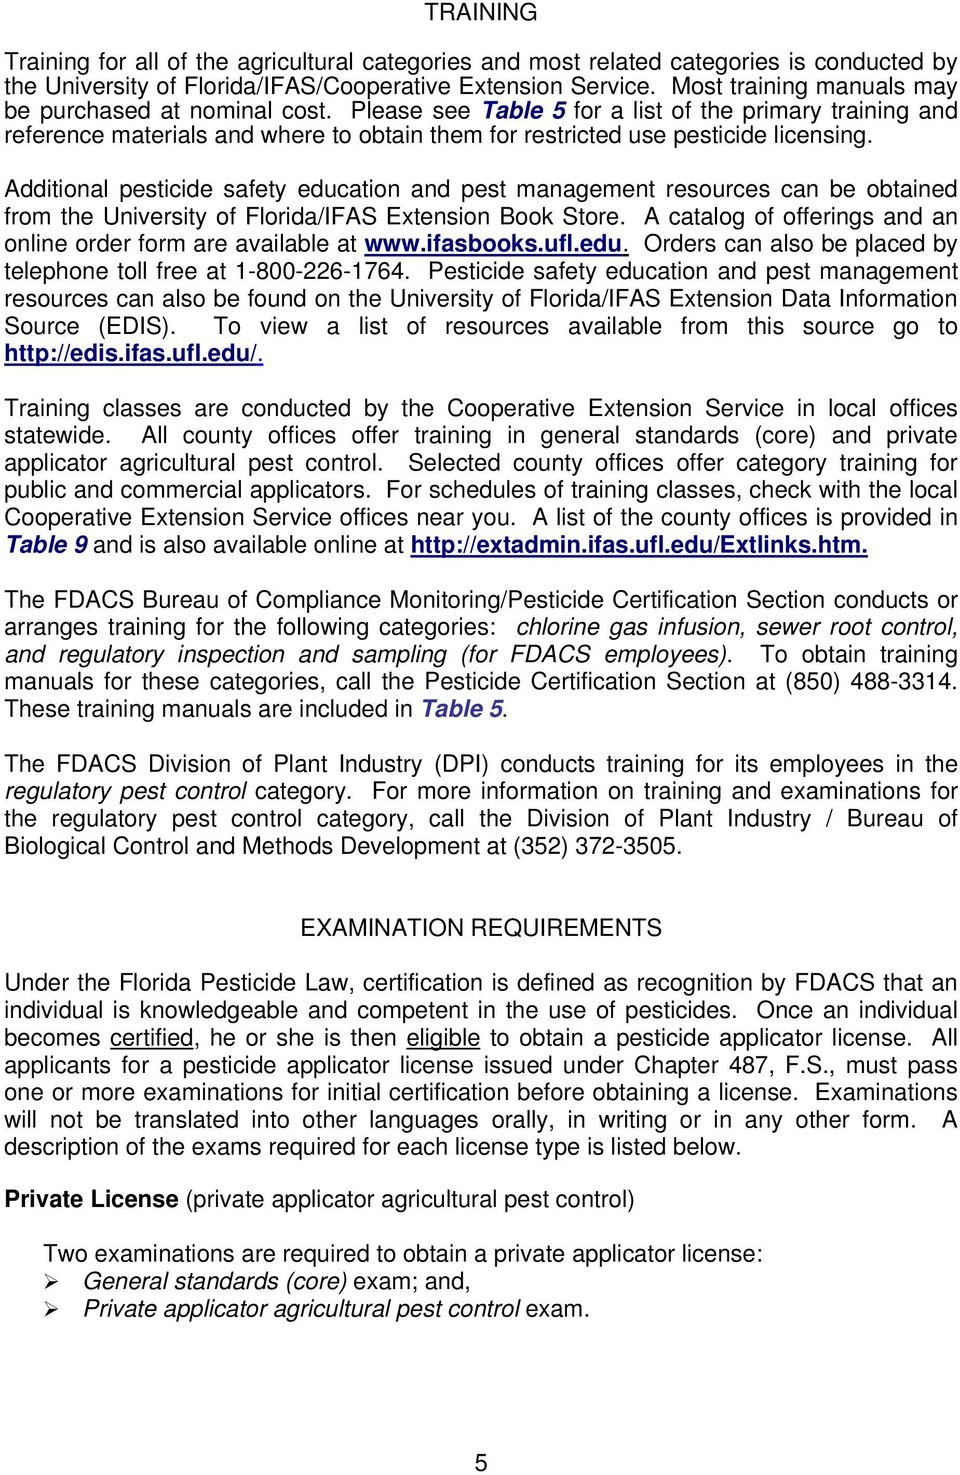 PESTICIDE APPLICATOR CERTIFICATION AND LICENSING IN FLORIDA - PDF